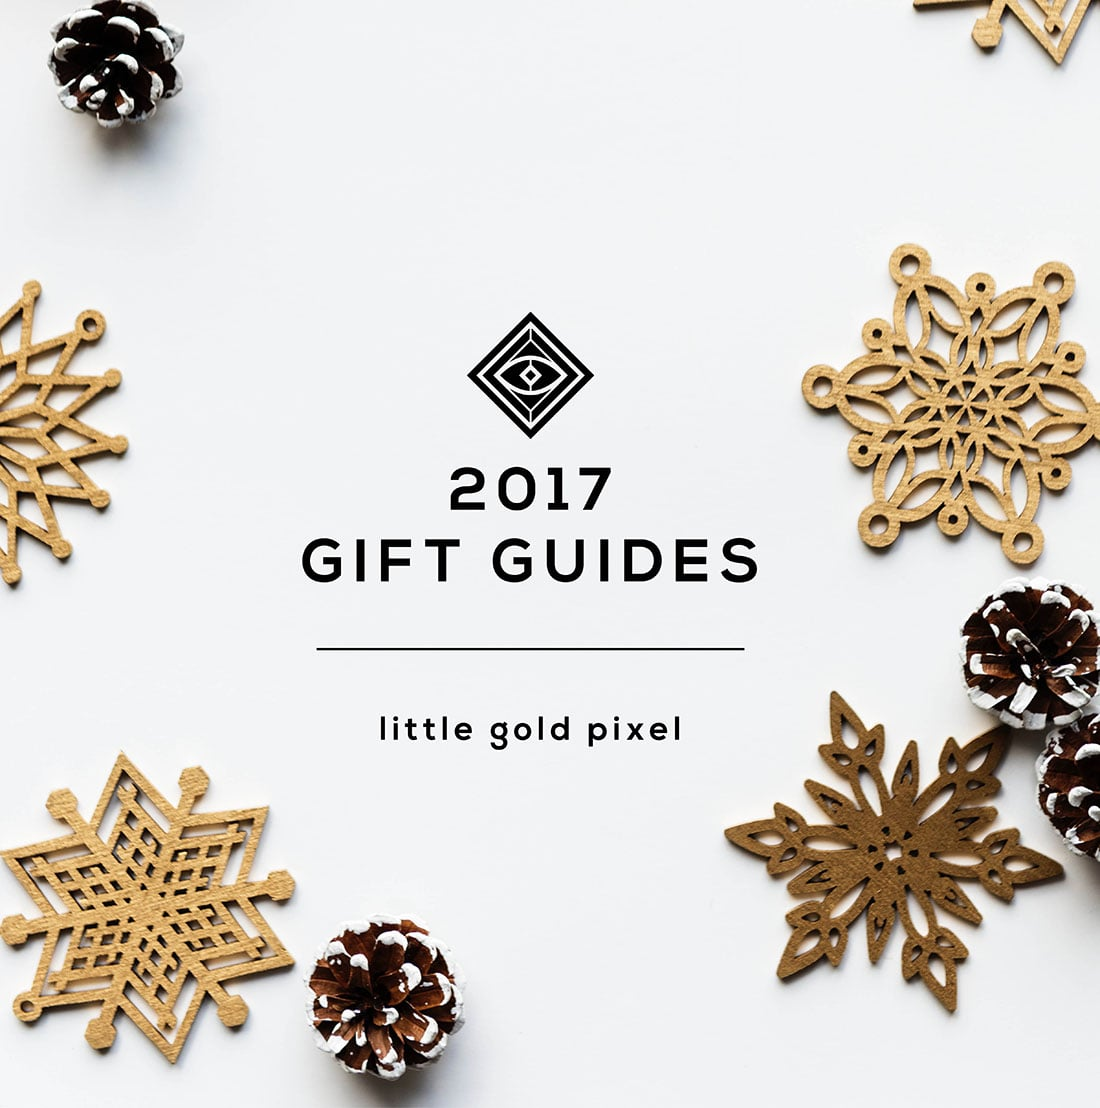 Little Gold Pixel's Minimalist Gift Guide: Here are 20 gifts perfect for those who appreciate clean lines and good design. Grab one for yourself while you're at it!